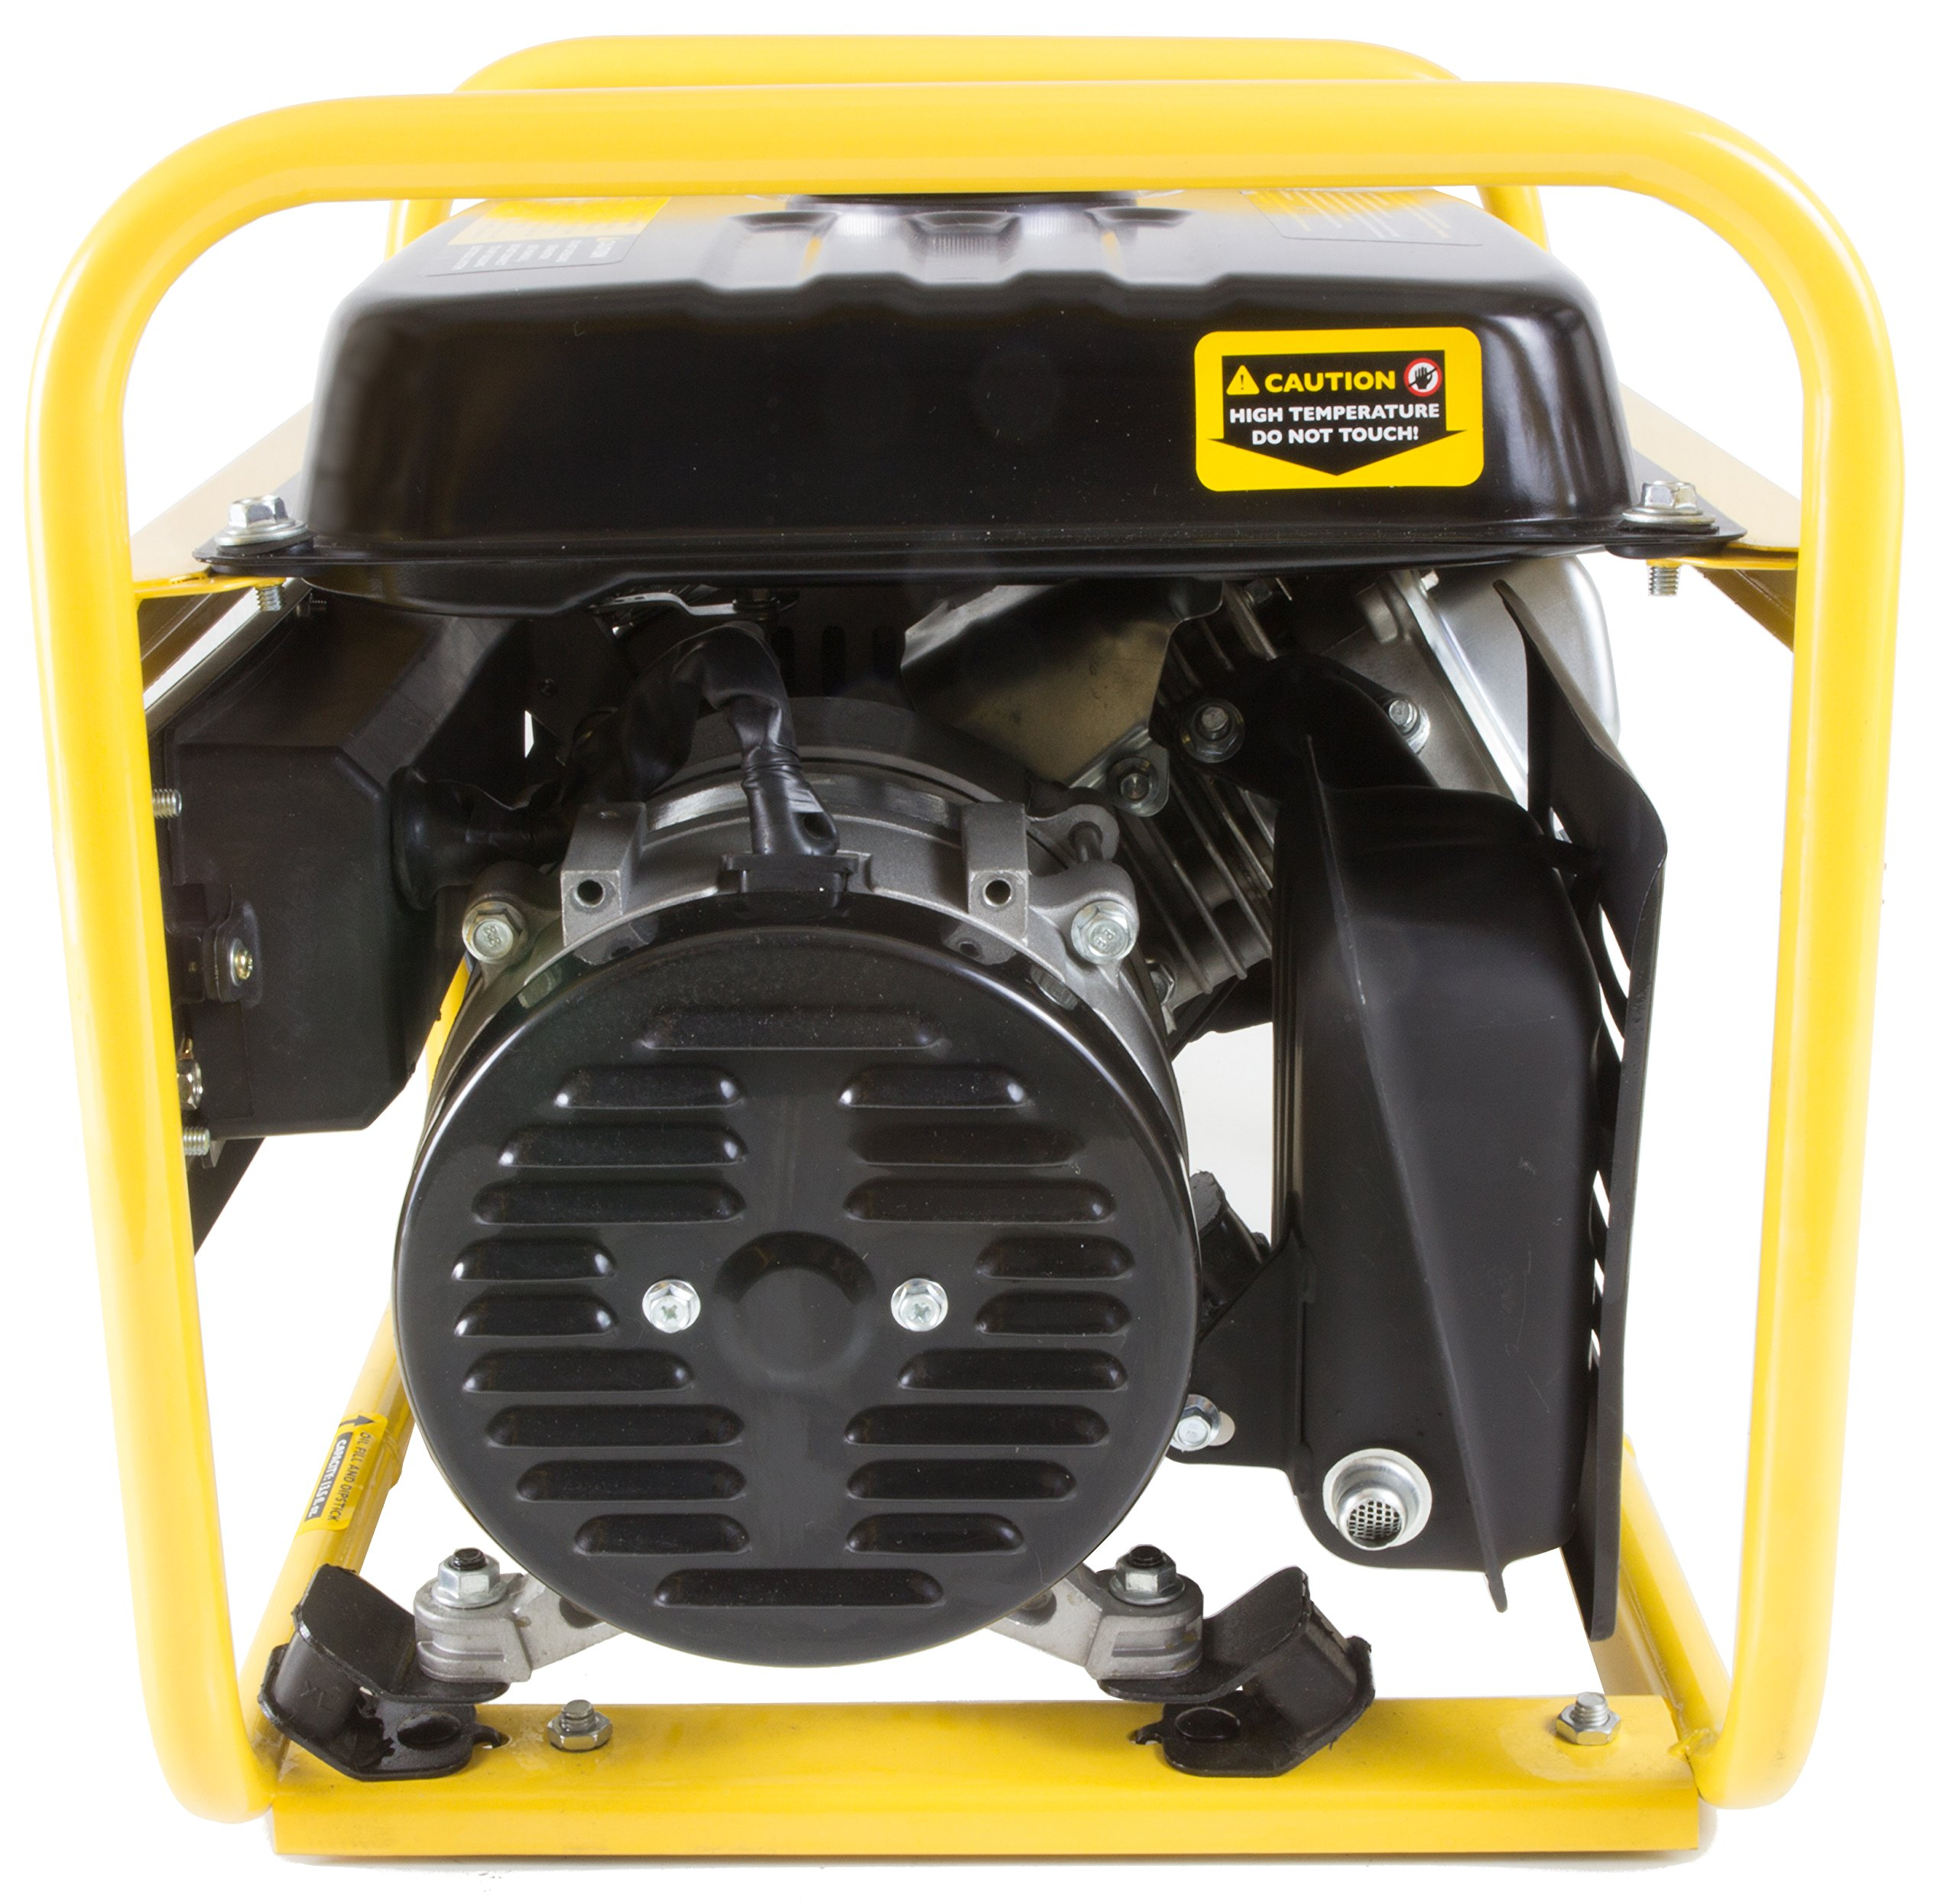 WEN 56180, 1500 Running Watts/1800 Starting Watts, Gas Powered Portable Generator, CARB Compliant by WEN (Image #4)